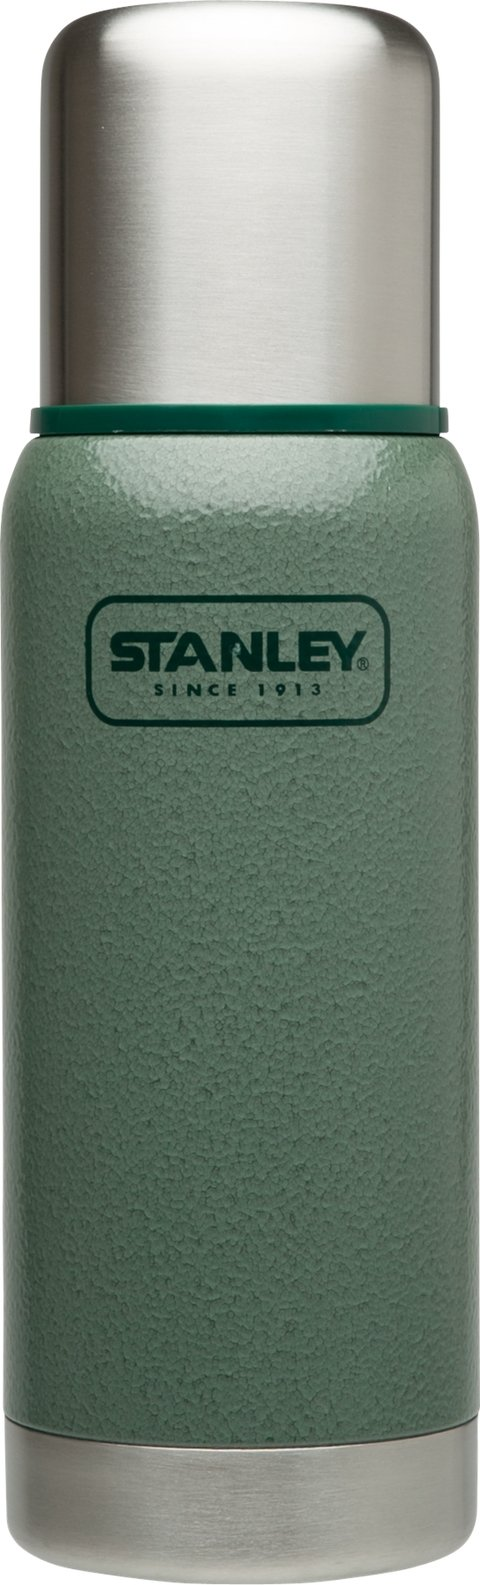 Termo Clasico Stanley 500ml Acero Inoxidable Adventure Personal